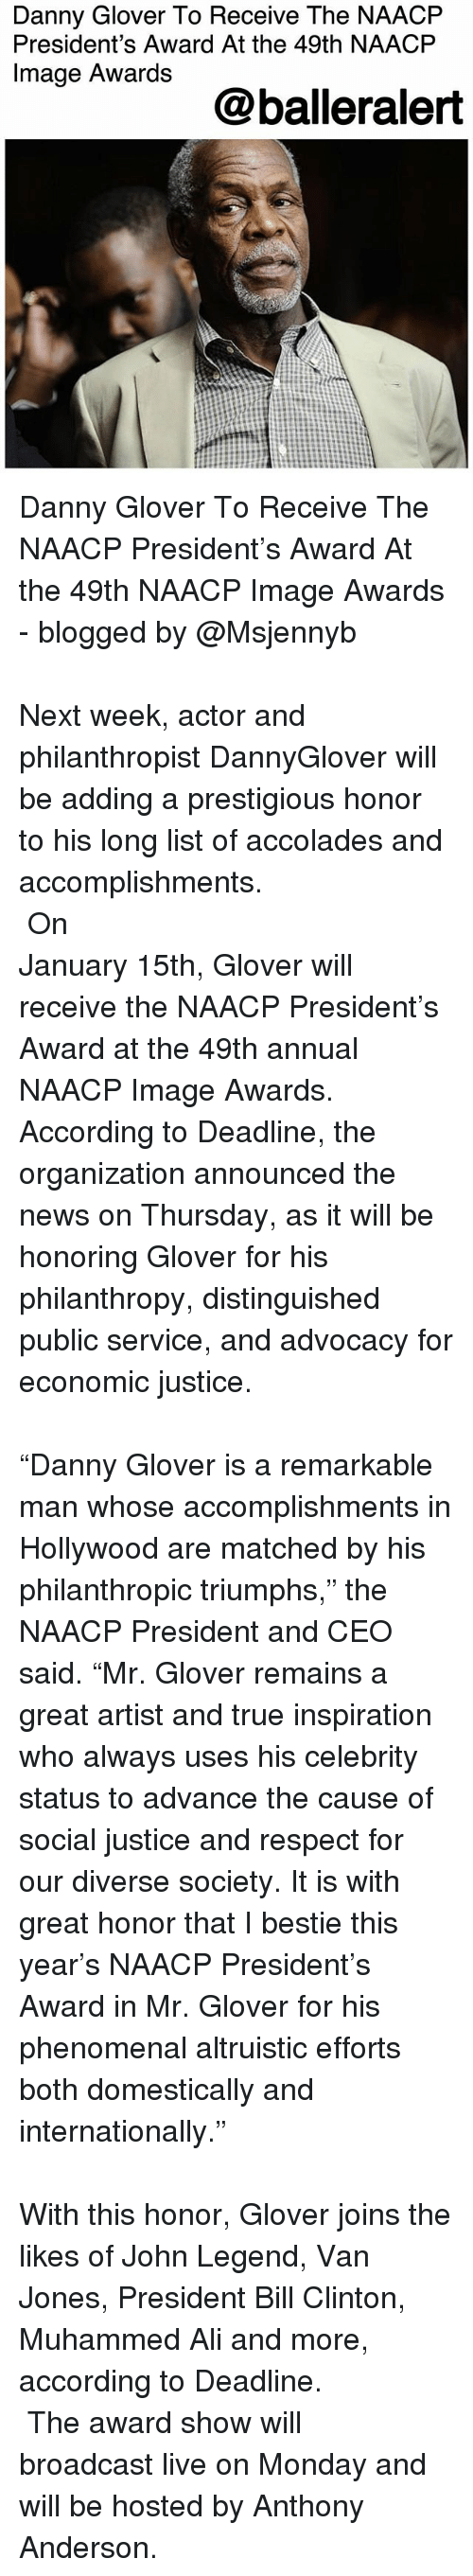 "Ali, Anthony Anderson, and Bill Clinton: Danny Glover To Receive The NAACFP  President's Award At the 49th NAACP  Image Awards  @balleralert Danny Glover To Receive The NAACP President's Award At the 49th NAACP Image Awards - blogged by @Msjennyb ⠀⠀⠀⠀⠀⠀⠀⠀⠀⠀⠀⠀⠀⠀⠀⠀⠀⠀⠀⠀⠀⠀⠀⠀⠀⠀⠀⠀⠀⠀⠀⠀⠀⠀⠀⠀⠀⠀⠀⠀⠀⠀⠀⠀⠀ Next week, actor and philanthropist DannyGlover will be adding a prestigious honor to his long list of accolades and accomplishments. ⠀⠀⠀⠀⠀⠀⠀⠀⠀⠀⠀⠀⠀⠀⠀⠀⠀⠀⠀⠀⠀⠀⠀⠀⠀⠀⠀⠀⠀⠀⠀⠀⠀⠀⠀⠀⠀⠀⠀⠀⠀⠀⠀⠀⠀ On January 15th, Glover will receive the NAACP President's Award at the 49th annual NAACP Image Awards. According to Deadline, the organization announced the news on Thursday, as it will be honoring Glover for his philanthropy, distinguished public service, and advocacy for economic justice. ⠀⠀⠀⠀⠀⠀⠀⠀⠀⠀⠀⠀⠀⠀⠀⠀⠀⠀⠀⠀⠀⠀⠀⠀⠀⠀⠀⠀⠀⠀⠀⠀⠀⠀⠀⠀⠀⠀⠀⠀⠀⠀⠀⠀⠀ ""Danny Glover is a remarkable man whose accomplishments in Hollywood are matched by his philanthropic triumphs,"" the NAACP President and CEO said. ""Mr. Glover remains a great artist and true inspiration who always uses his celebrity status to advance the cause of social justice and respect for our diverse society. It is with great honor that I bestie this year's NAACP President's Award in Mr. Glover for his phenomenal altruistic efforts both domestically and internationally."" ⠀⠀⠀⠀⠀⠀⠀⠀⠀⠀⠀⠀⠀⠀⠀⠀⠀⠀⠀⠀⠀⠀⠀⠀⠀⠀⠀⠀⠀⠀⠀⠀⠀⠀⠀⠀⠀⠀⠀⠀⠀⠀⠀⠀⠀ With this honor, Glover joins the likes of John Legend, Van Jones, President Bill Clinton, Muhammed Ali and more, according to Deadline. ⠀⠀⠀⠀⠀⠀⠀⠀ ⠀⠀⠀⠀⠀⠀⠀⠀ The award show will broadcast live on Monday and will be hosted by Anthony Anderson."